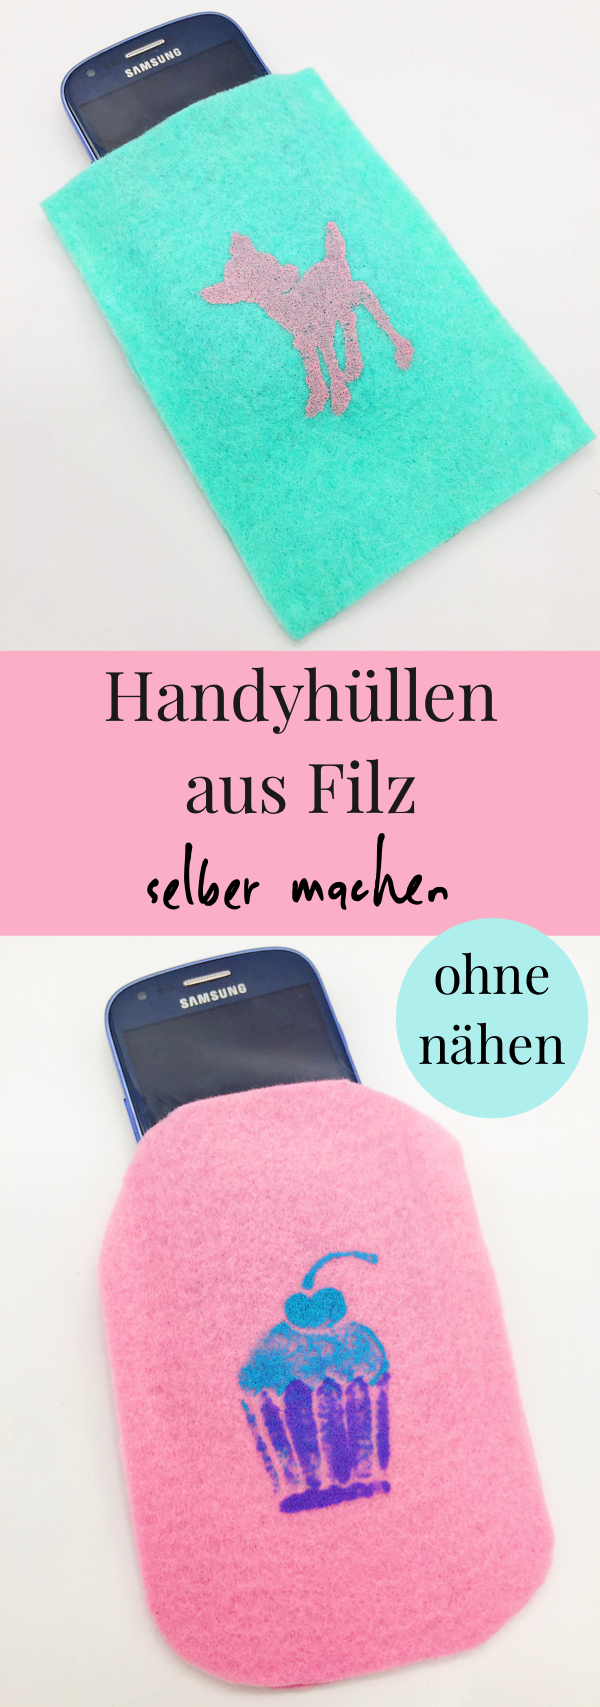 diy handyh llen selbst gestalten aus filz ohne n hen happy dings diy tipps pinterest. Black Bedroom Furniture Sets. Home Design Ideas